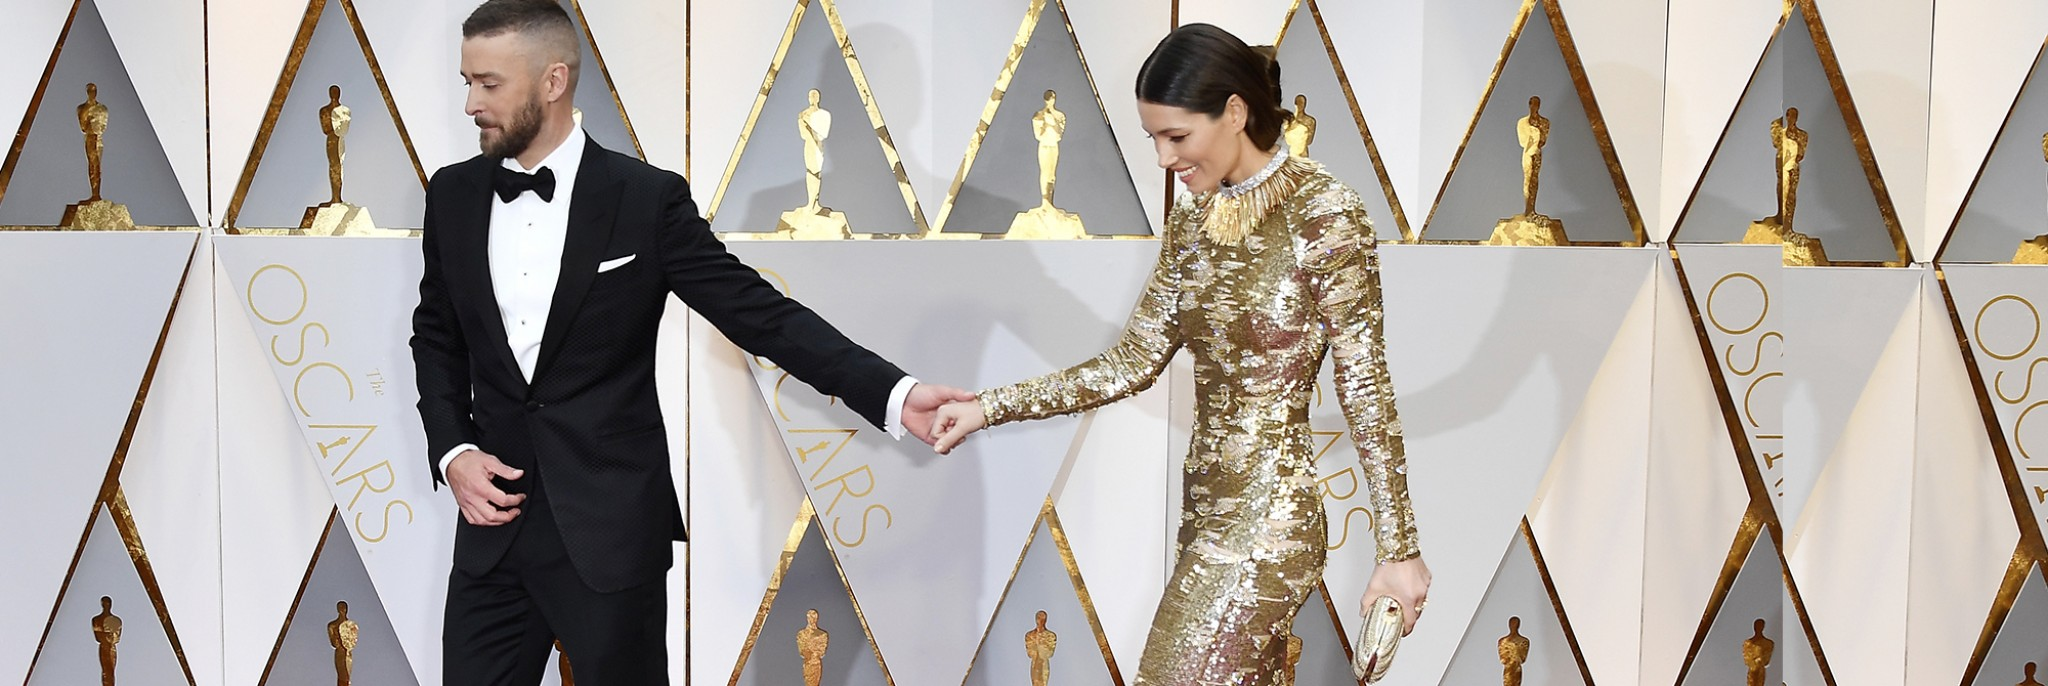 Love Wins at the Oscars! The Cutest Couple Moments on the Red Carpet